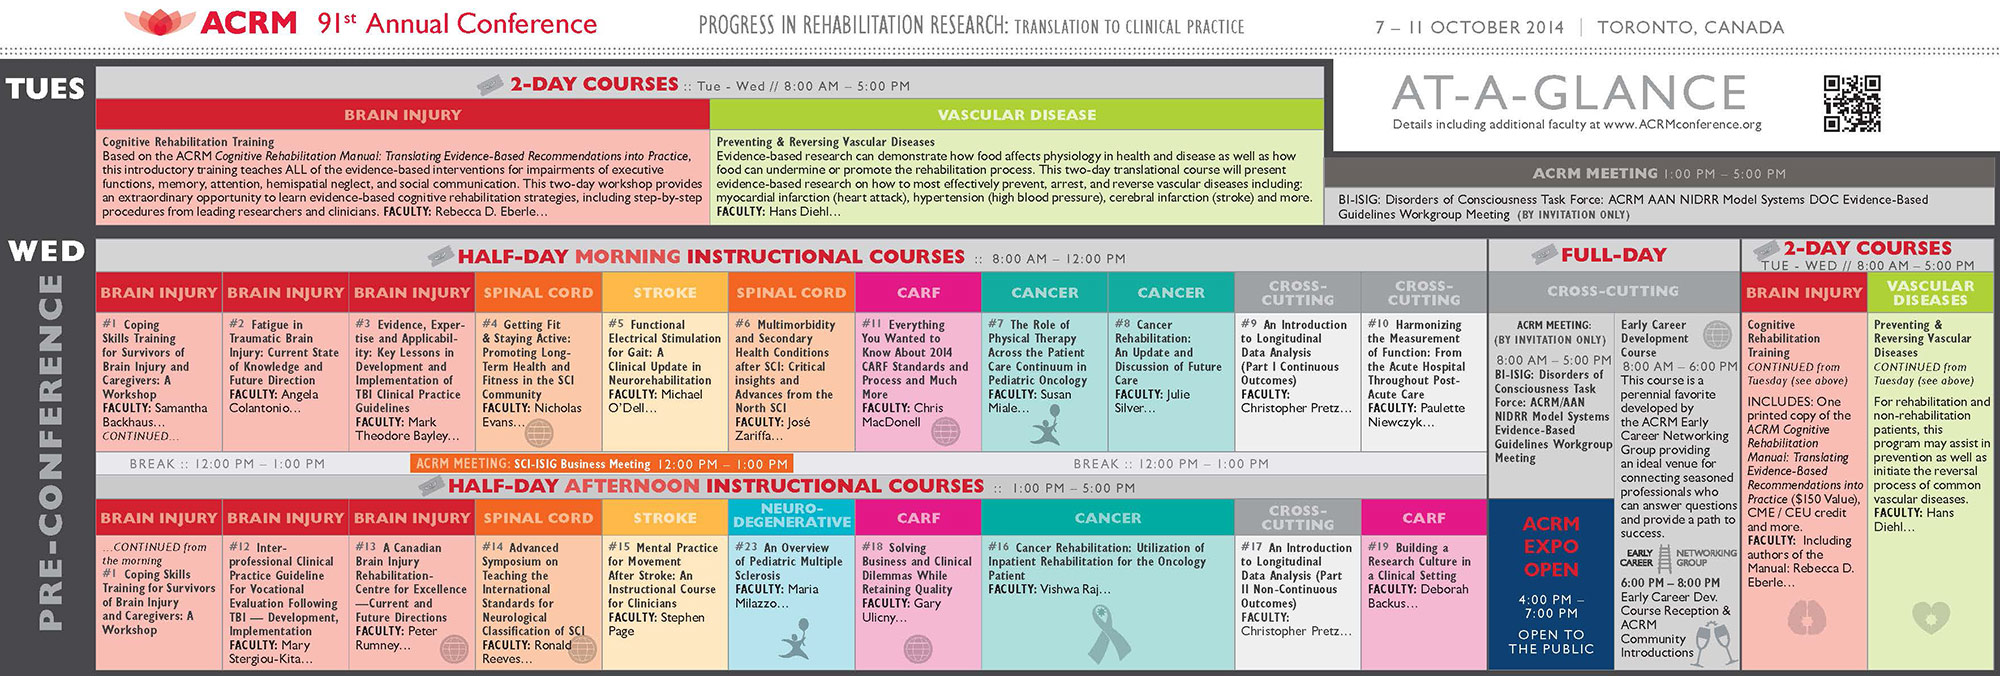 Pre-Conference courses at-a-glance